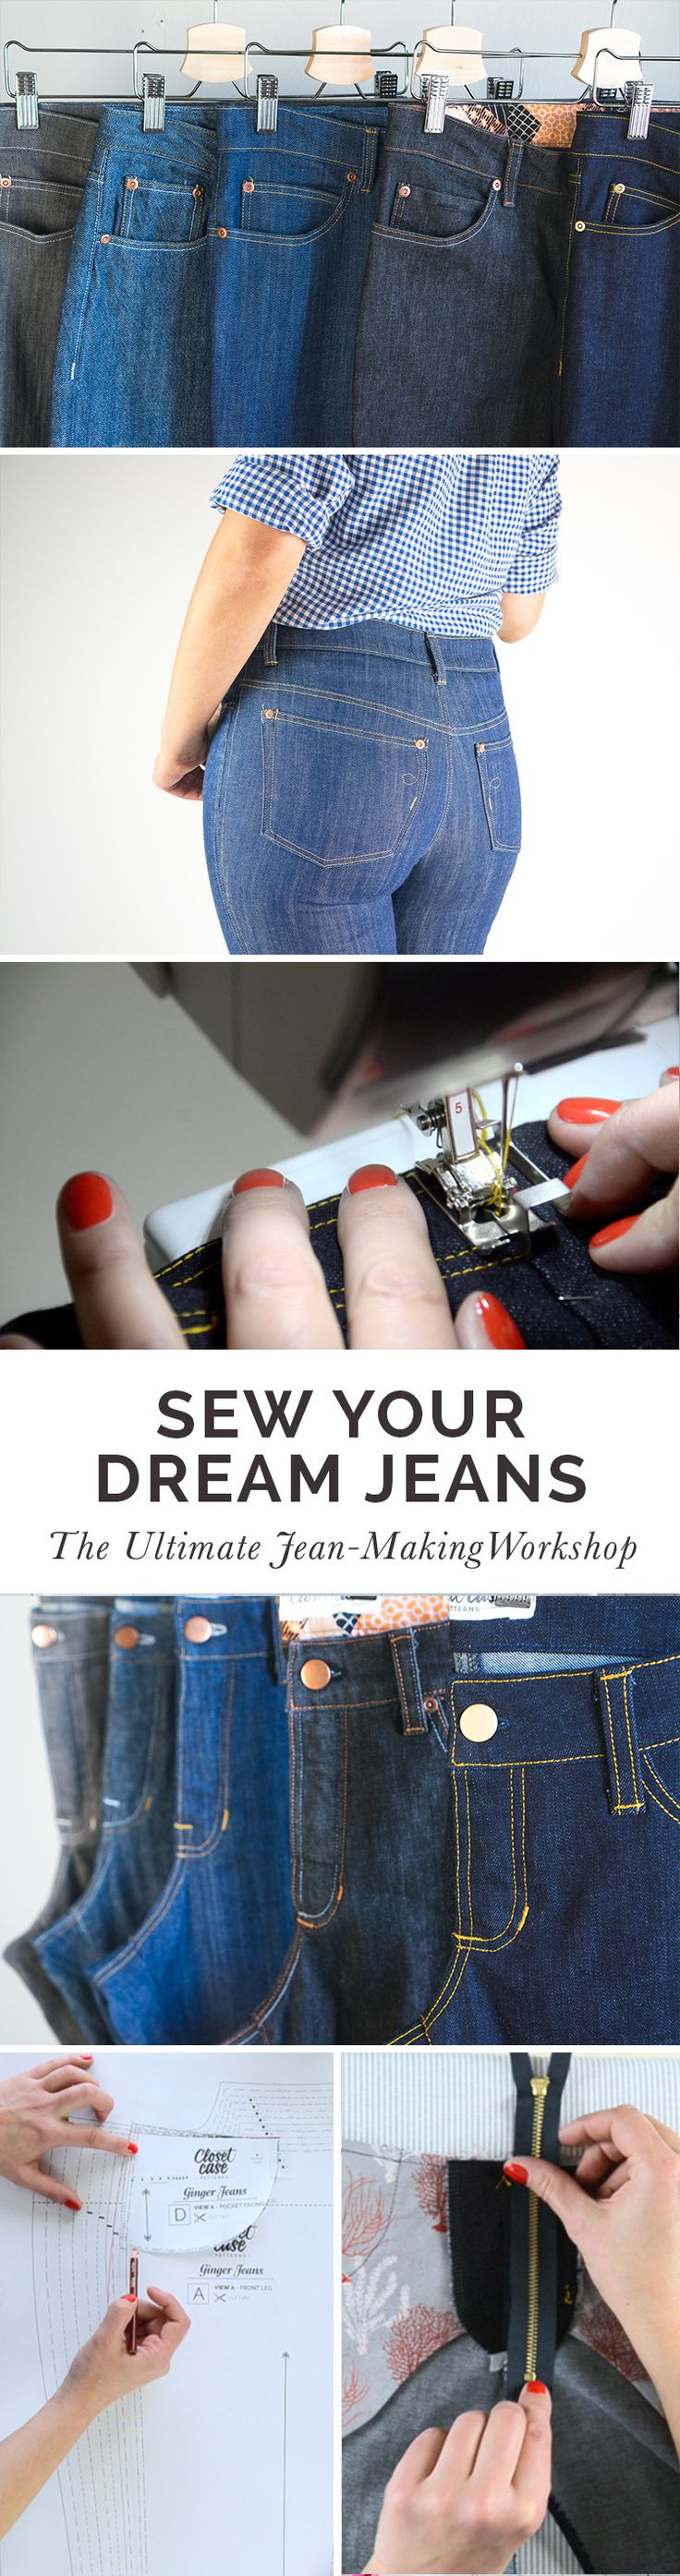 The ultimate online jean-making course! Learn to Sew Your Dream Jeans with Heather Lou of Closet Case Patterns. http://sewingworkshops.closetcasefiles.com/p/sew-your-dream-jeans/?product_id=232412&coupon_code=PRESALE&preview=logged_out&utm_source=Closet+Case+Patterns+Updates&utm_campaign=79d1d24e27-EMAIL_CAMPAIGN_2017_01_14&utm_medium=email&utm_term=0_2c862ec5e2-79d1d24e27-301881745&mc_cid=79d1d24e27&mc_eid=98937766f0